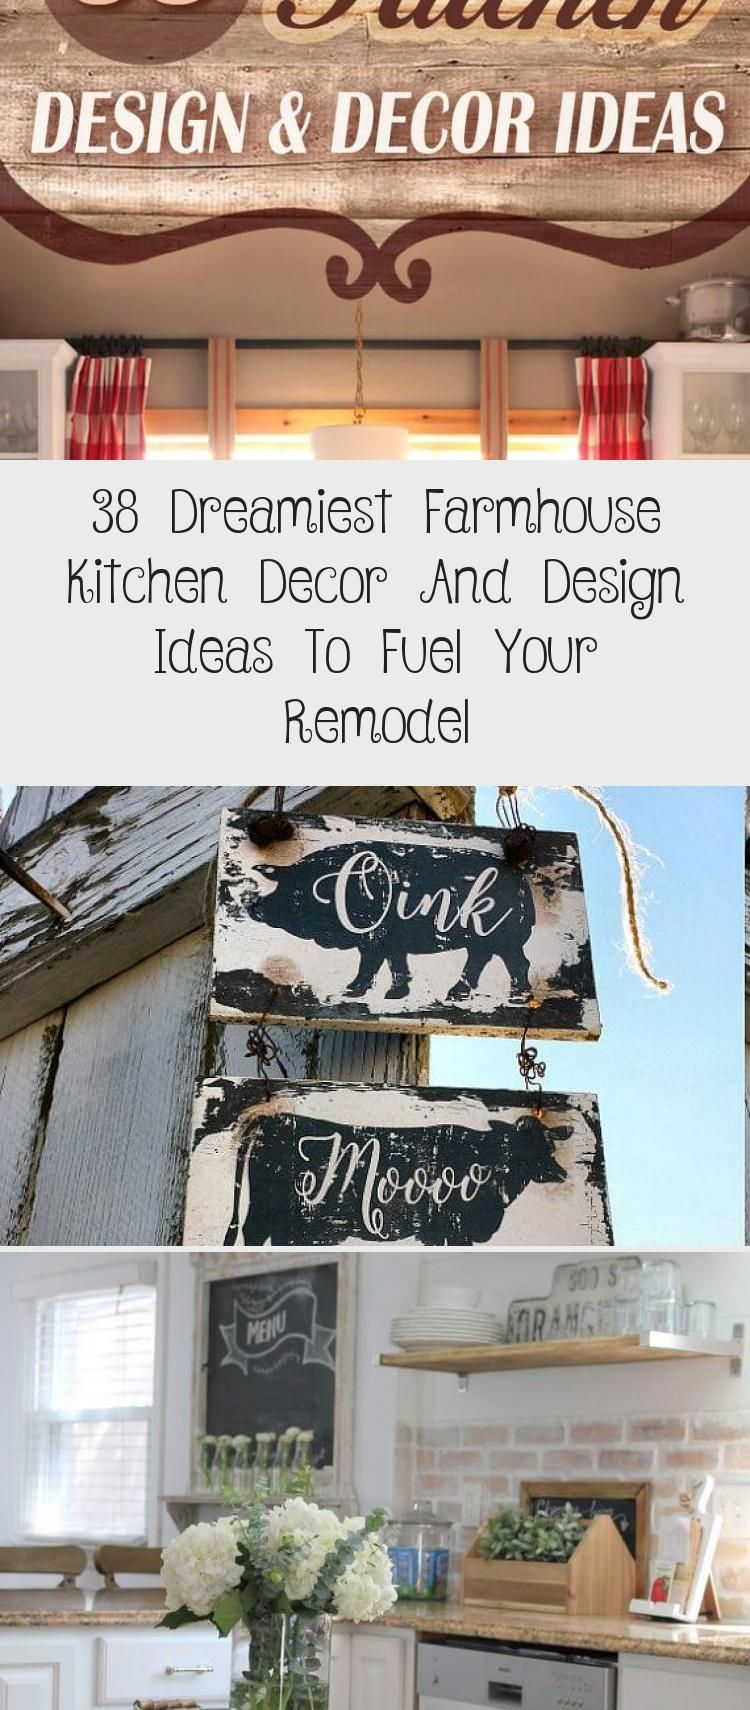 Photo of 38 Dreamiest Farmhouse Kitchen Decor And Design Ideas To Fuel Your Remodel – CUISINE